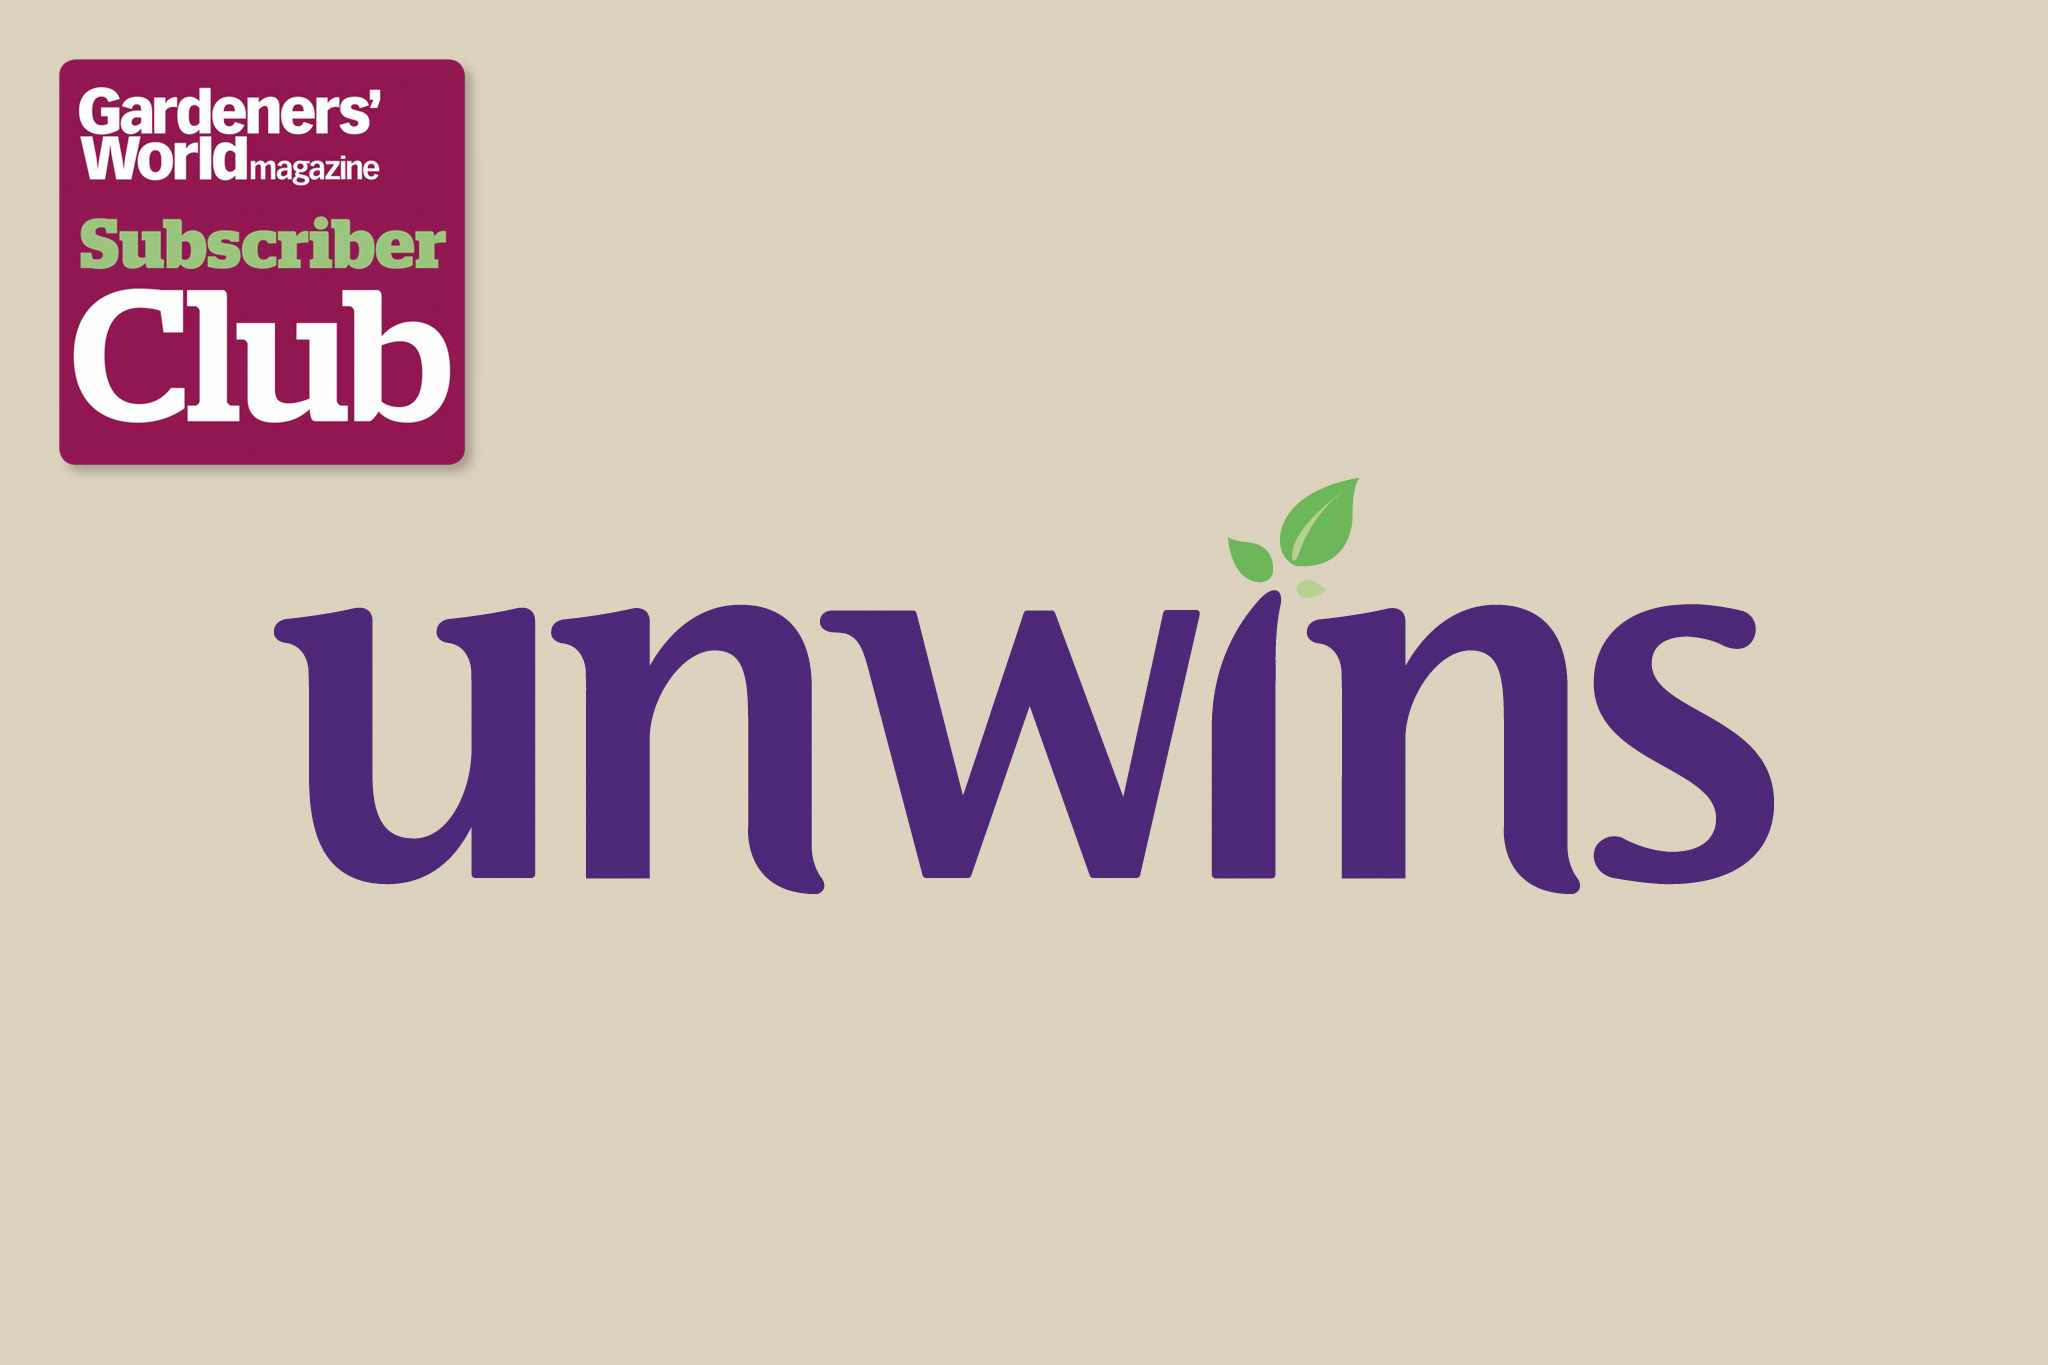 Unwins BBC Gardeners' World Magazine Subscriber Club discount